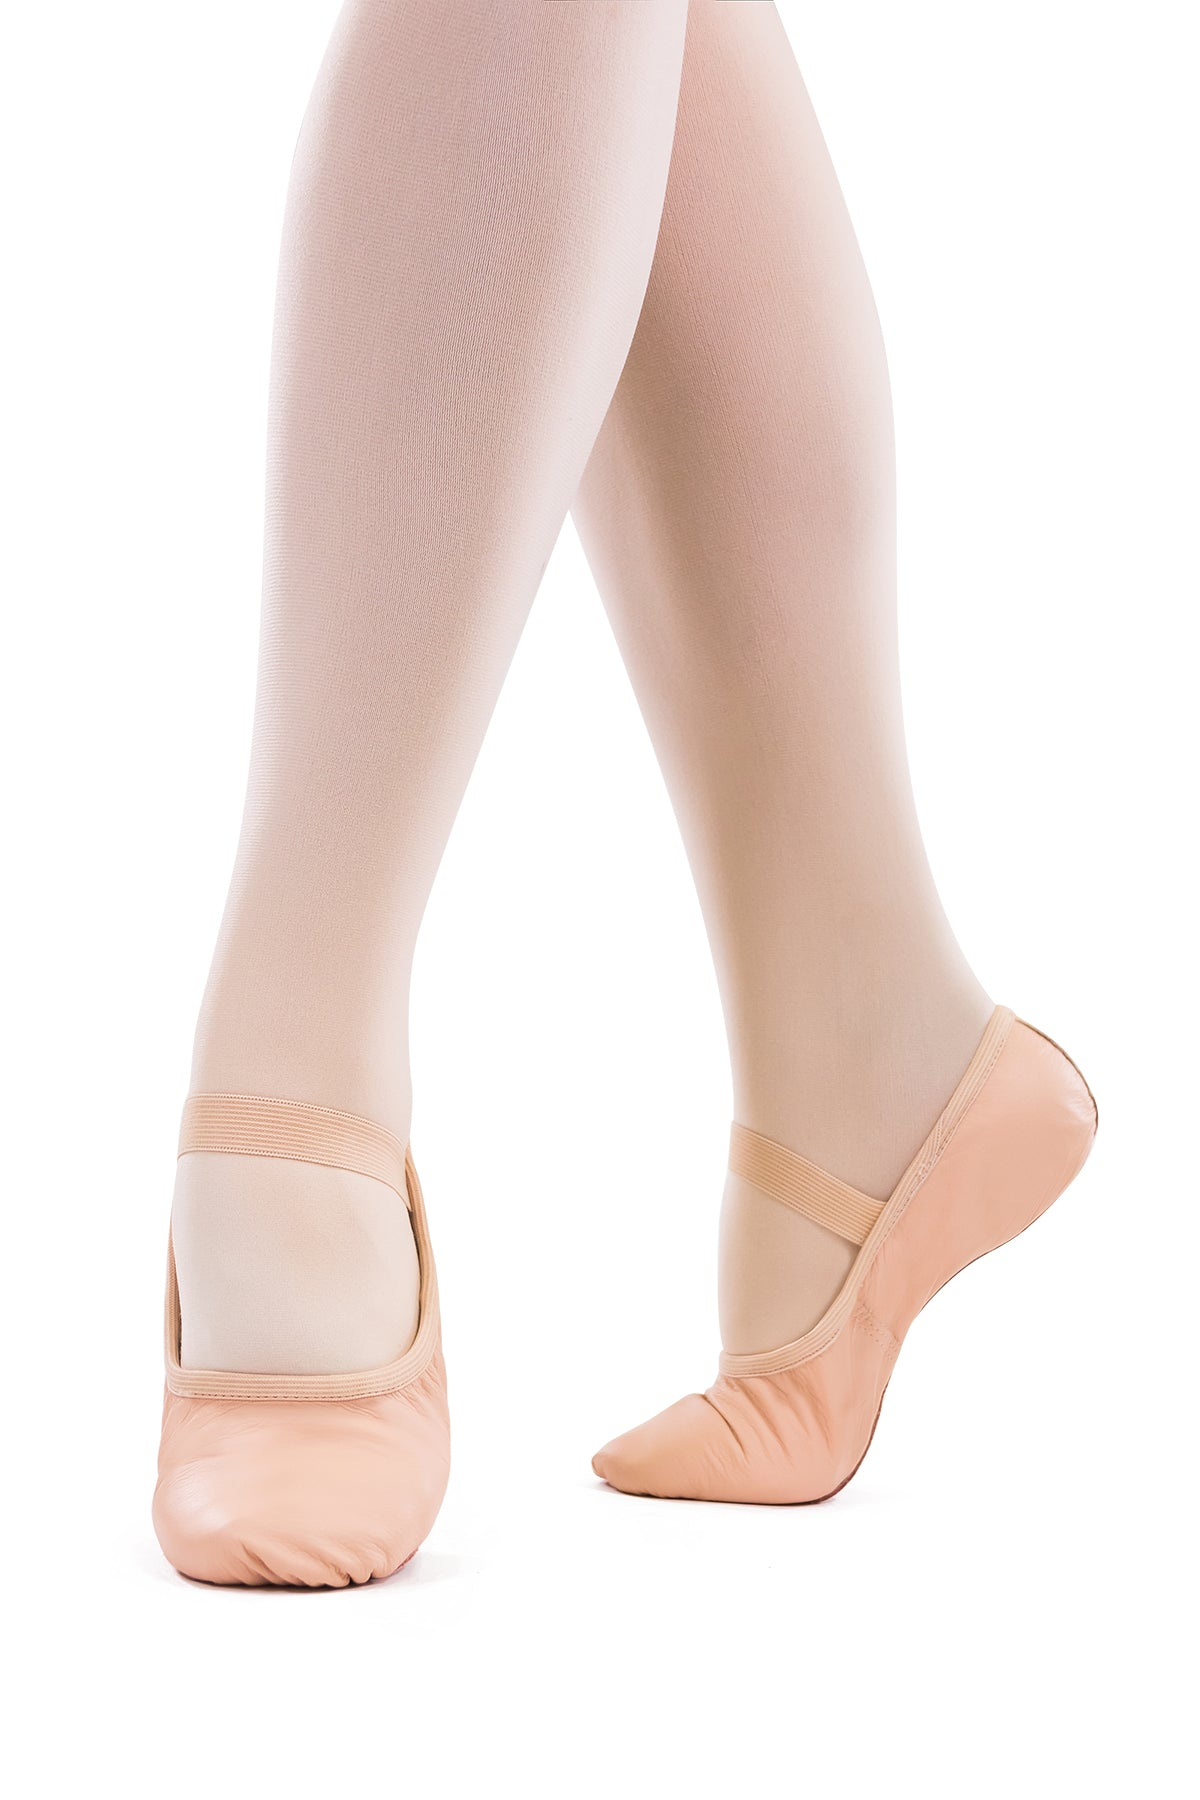 So Danca SD69 Brittany Adult Premium Leather Full Sole Ballet Slipper